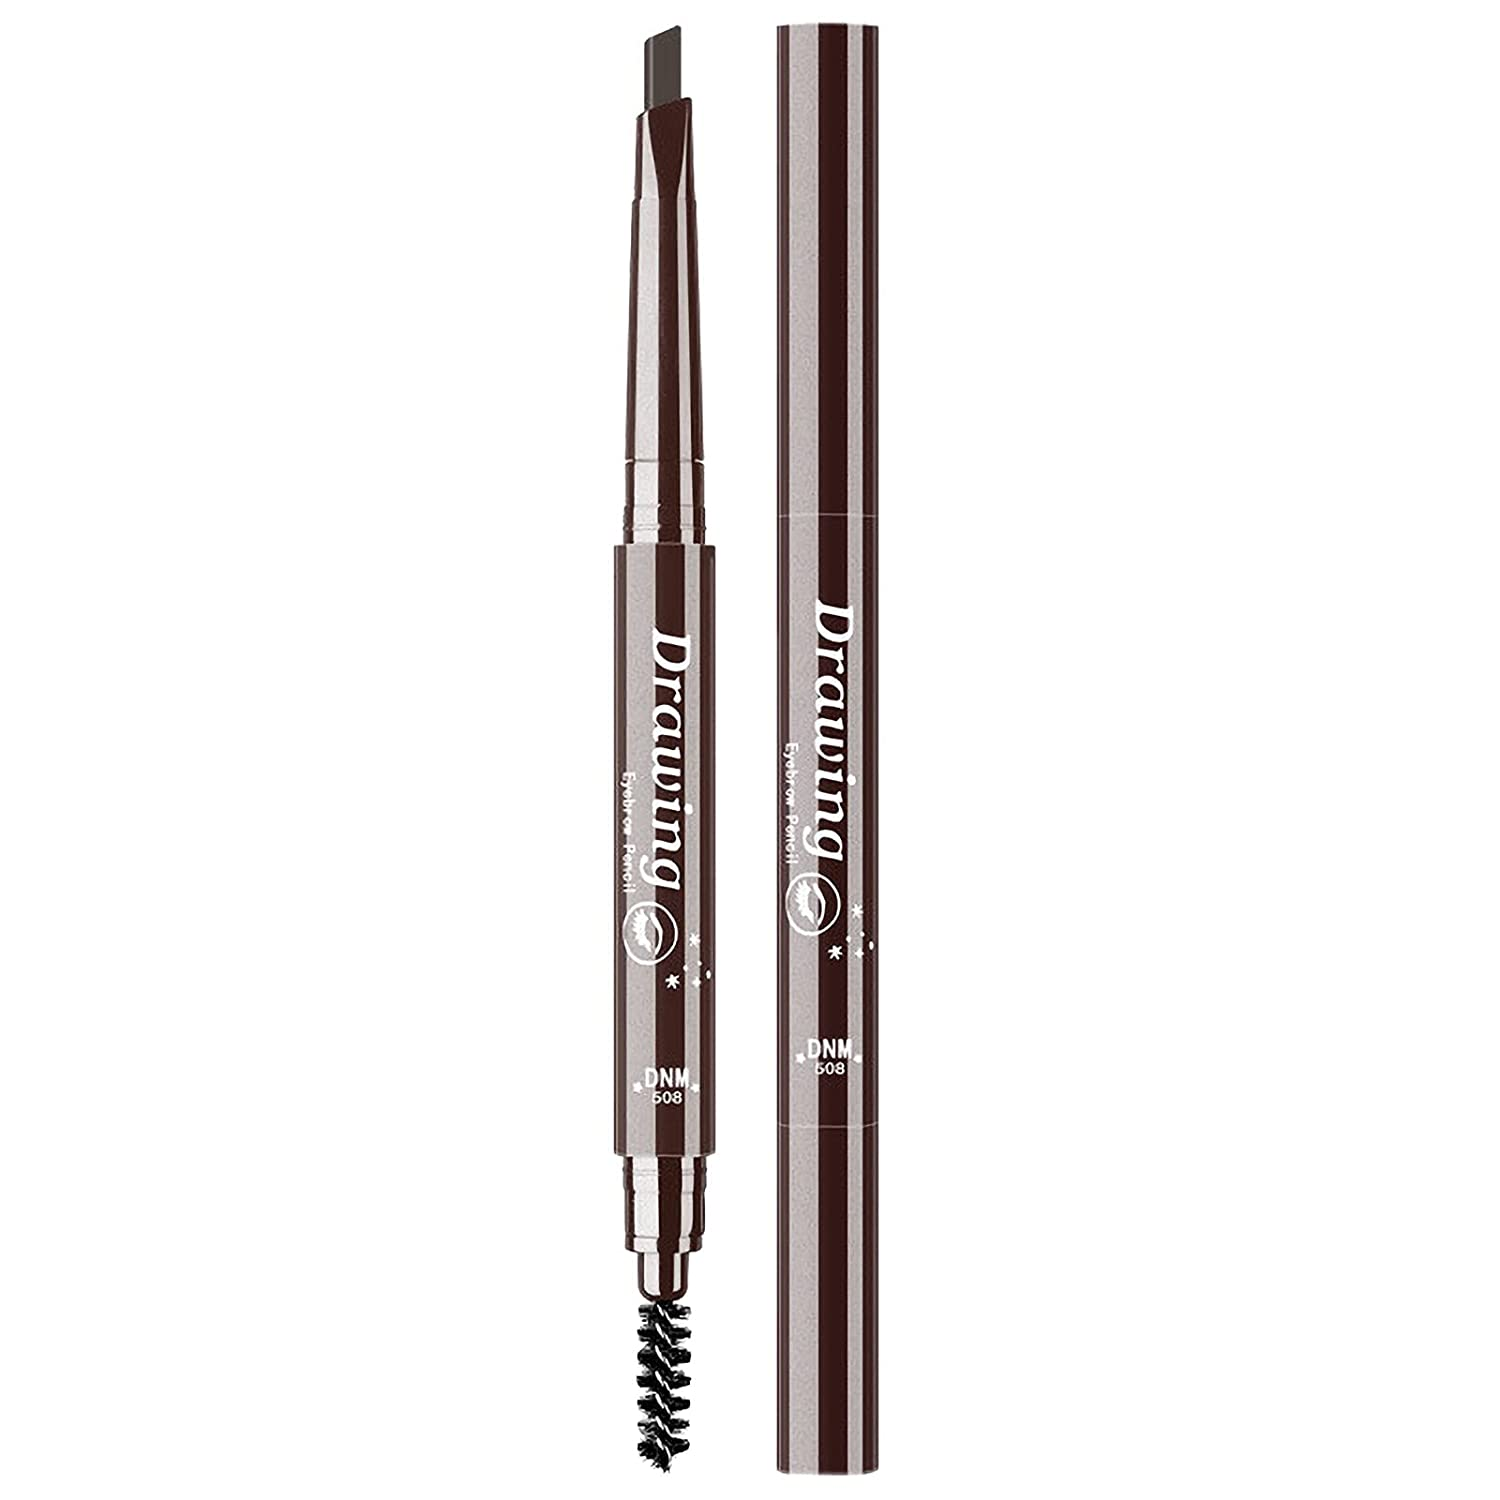 Double Now free shipping Headed Eyebrow Pencil Max 61% OFF Waterproof Makeup Brow C Definer 7